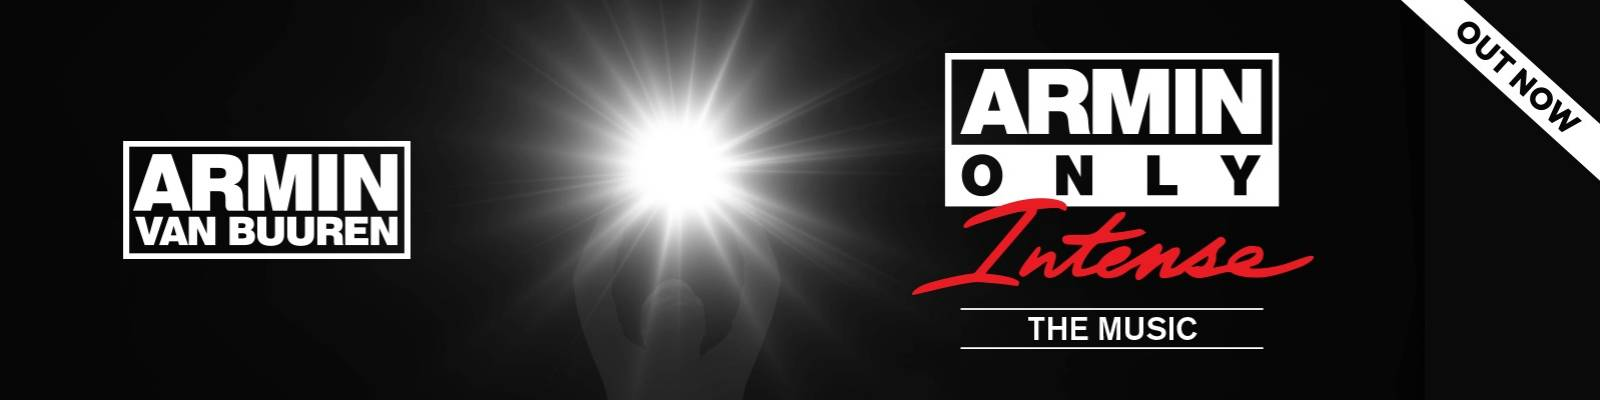 """Out Now: Armin Only – Intense """"The Music"""""""